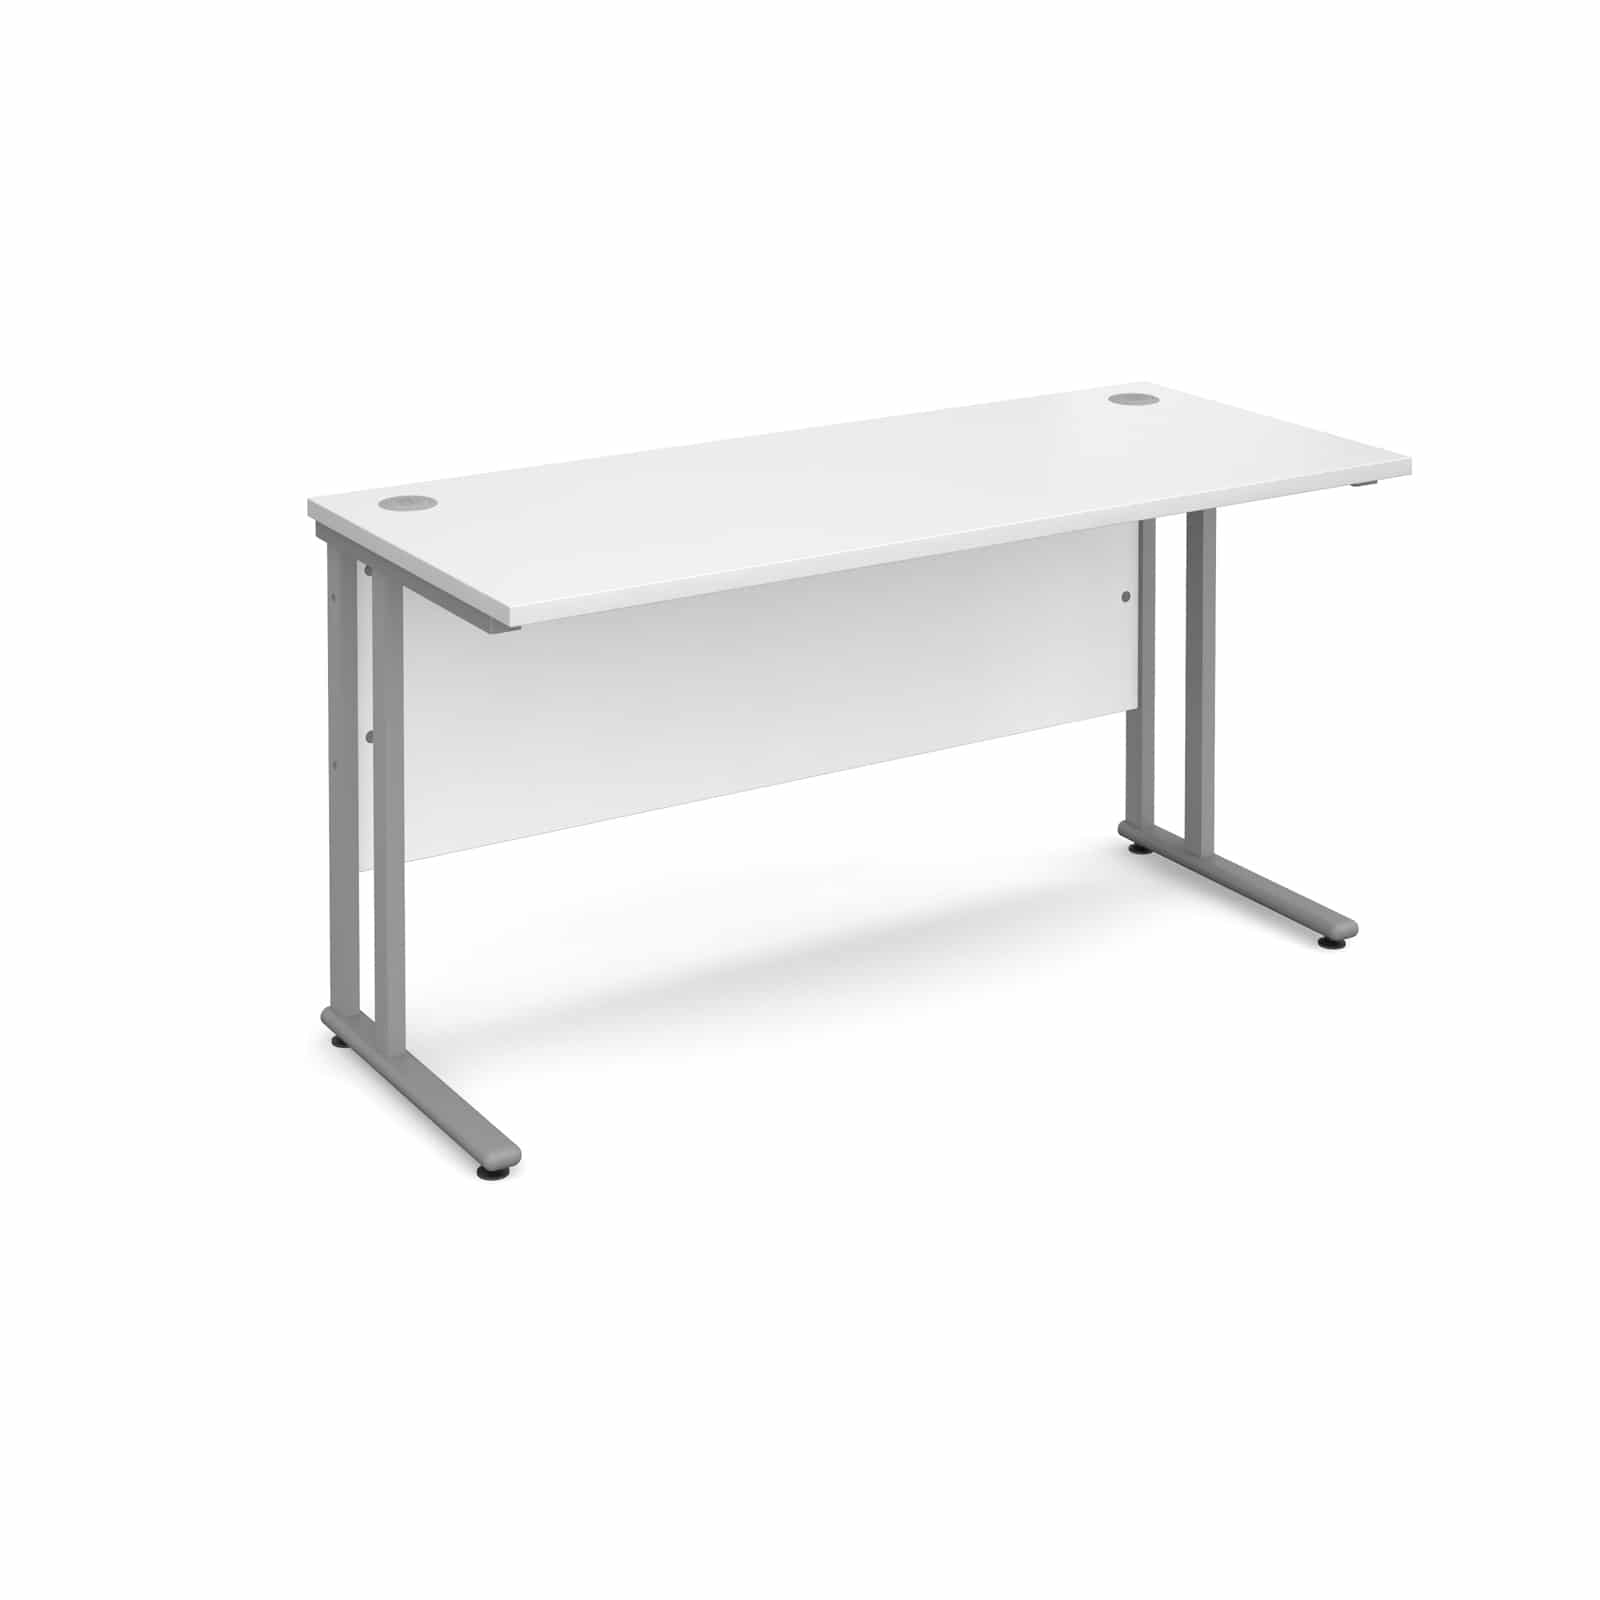 Bimi Slimline 1400mm X 600mm Rectangular Straight Desk In